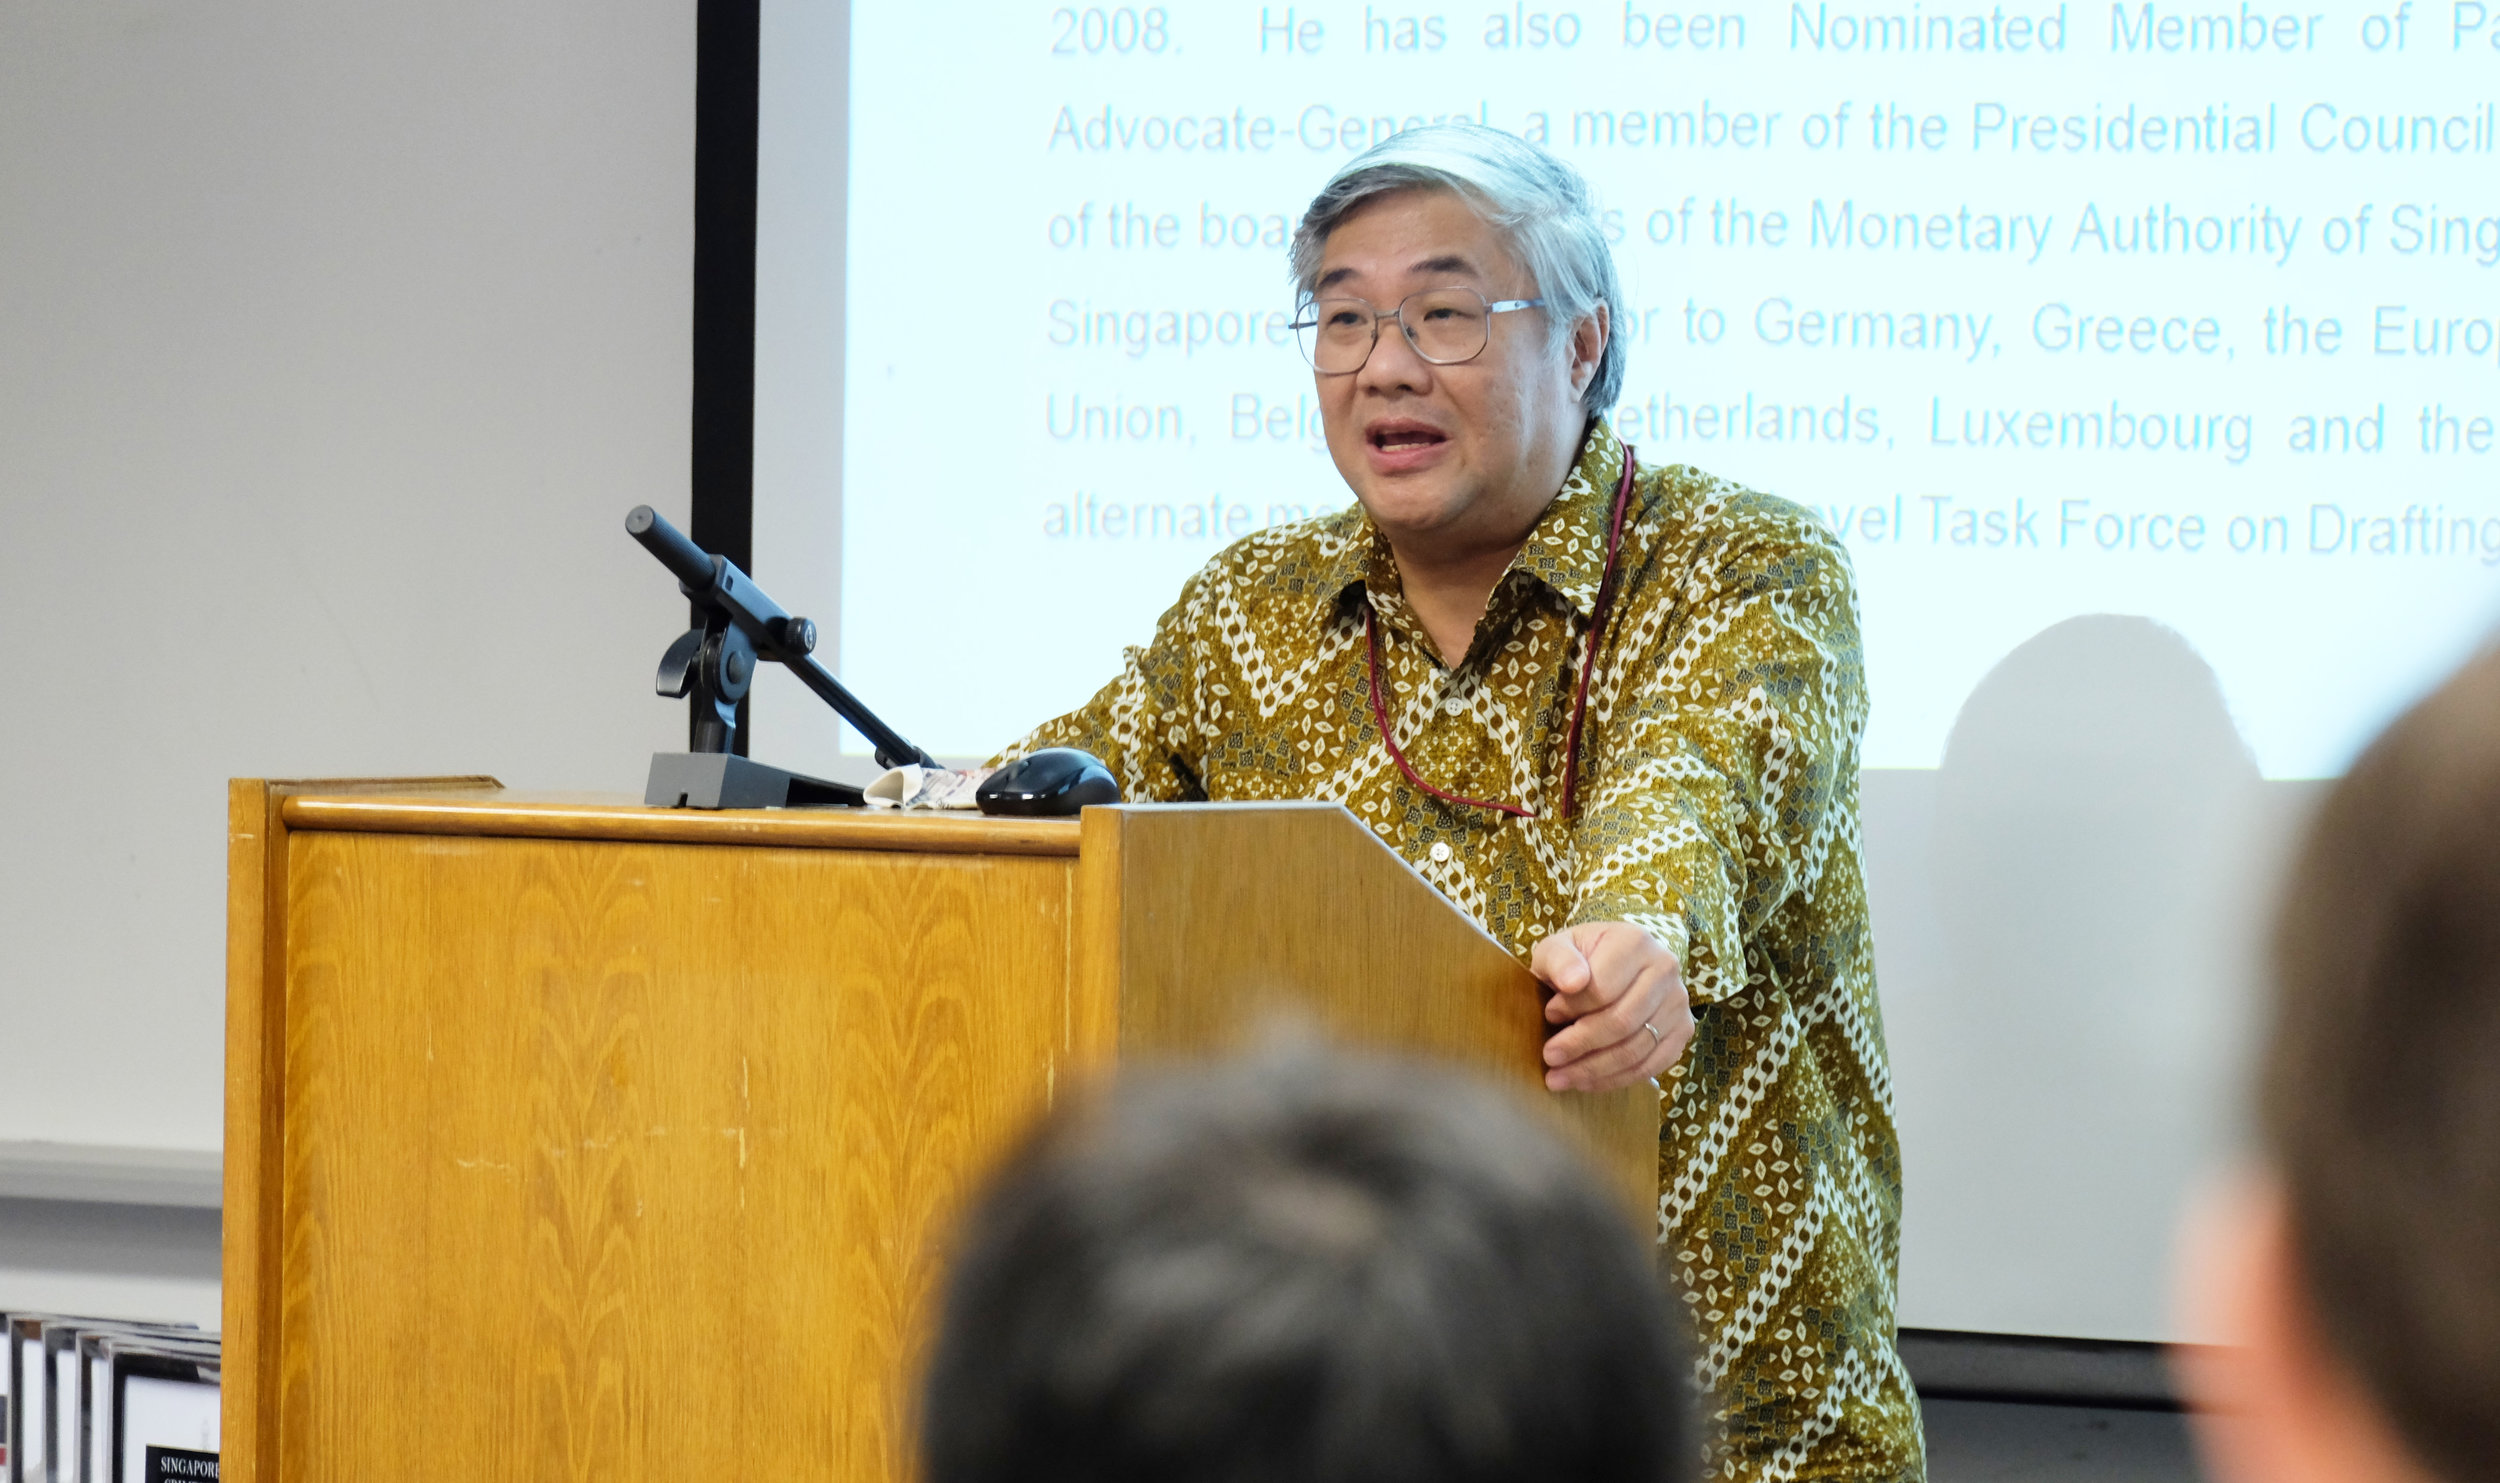 Professor Walter Woon SC delivering his keynote address.